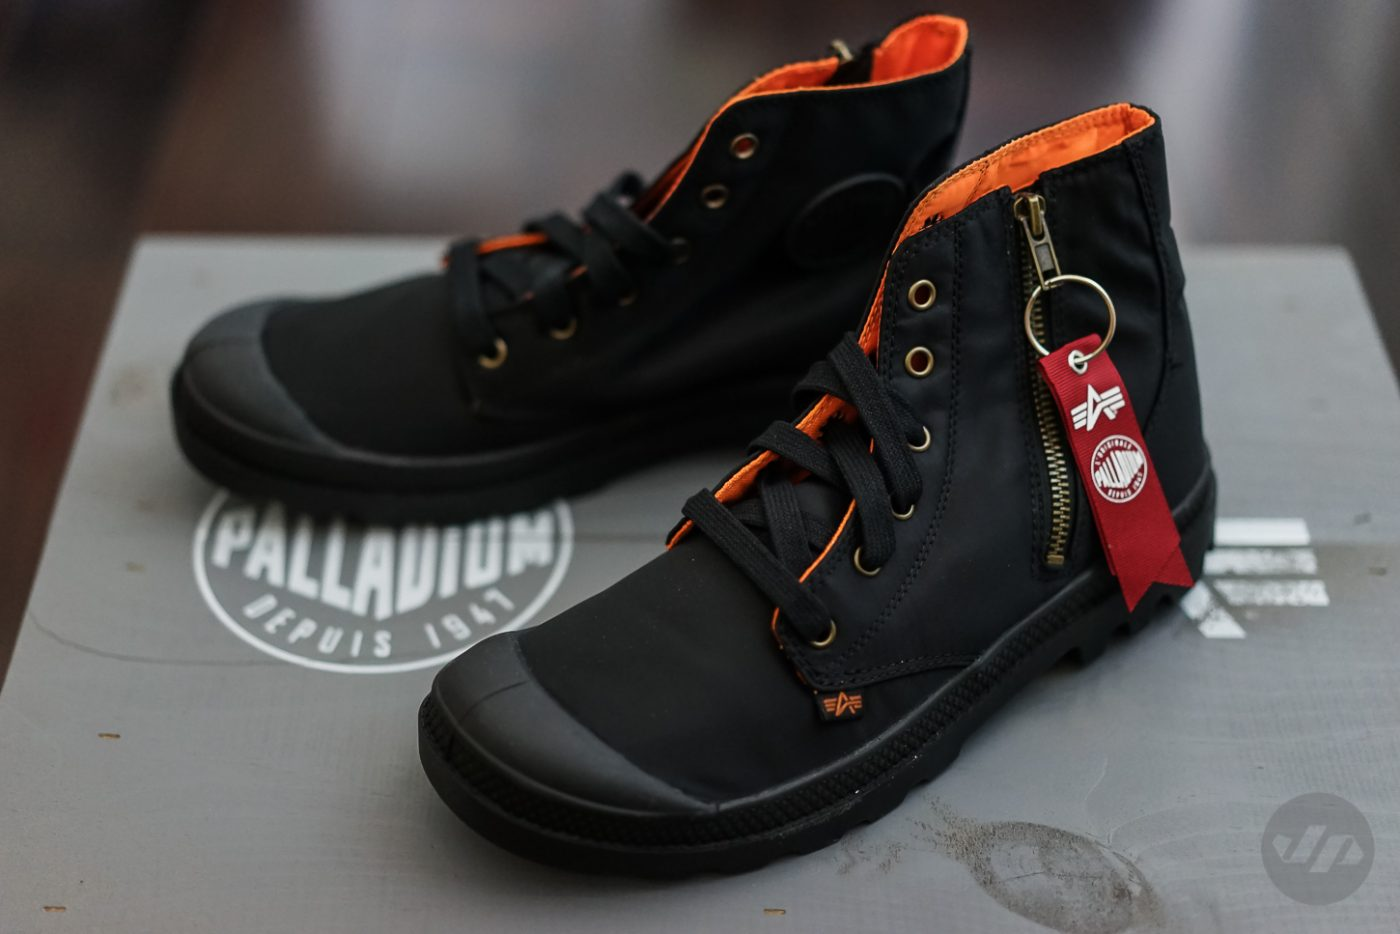 7b770eeeb2 Alpha Industries was founded in 1959 with the sole mission of protecting  American service members around the globe. The U.S. Department of Defense  entrusted ...